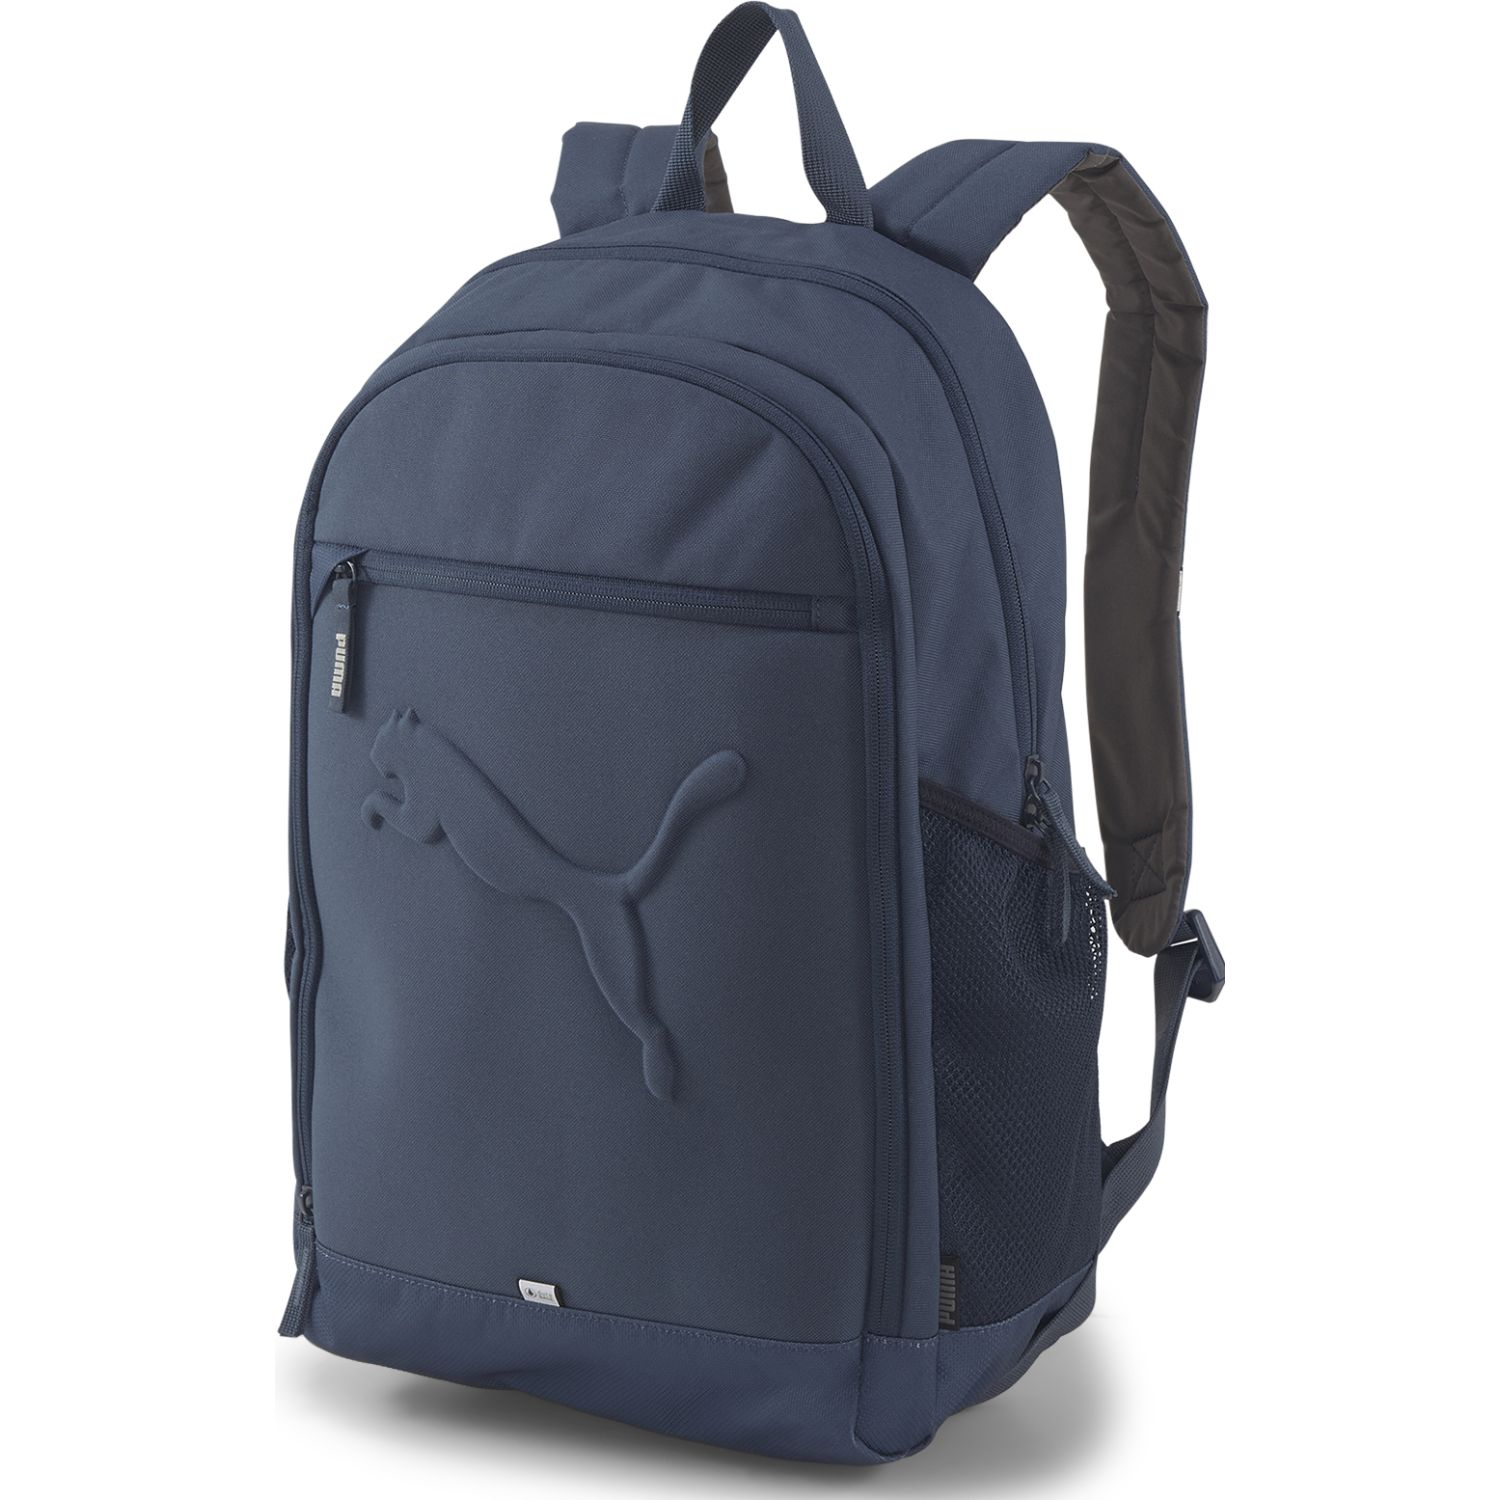 Puma puma buzz backpack Azul / negro Mochilas Multipropósitos